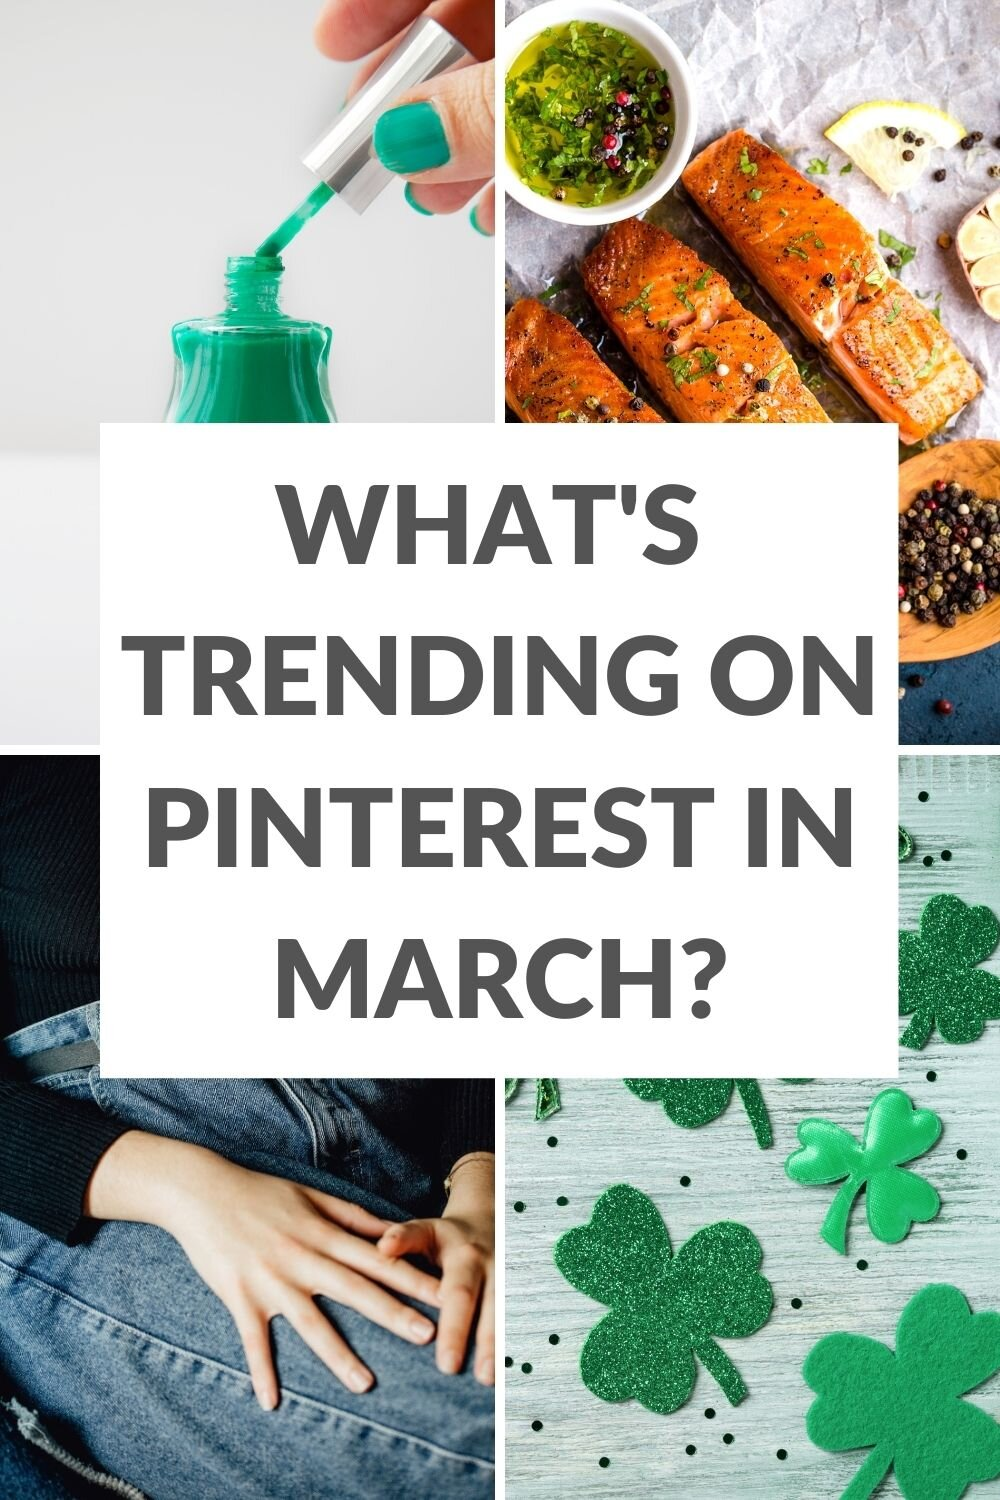 Keyword research is an important part of establishing Pinterest SEO on your business account. With the Pinterest Trends tool, you can see what's trending on the platform that 400 million users are actively engaging with each month. In this article, you'll learn more about what's trending on Pinterest in March 2021.